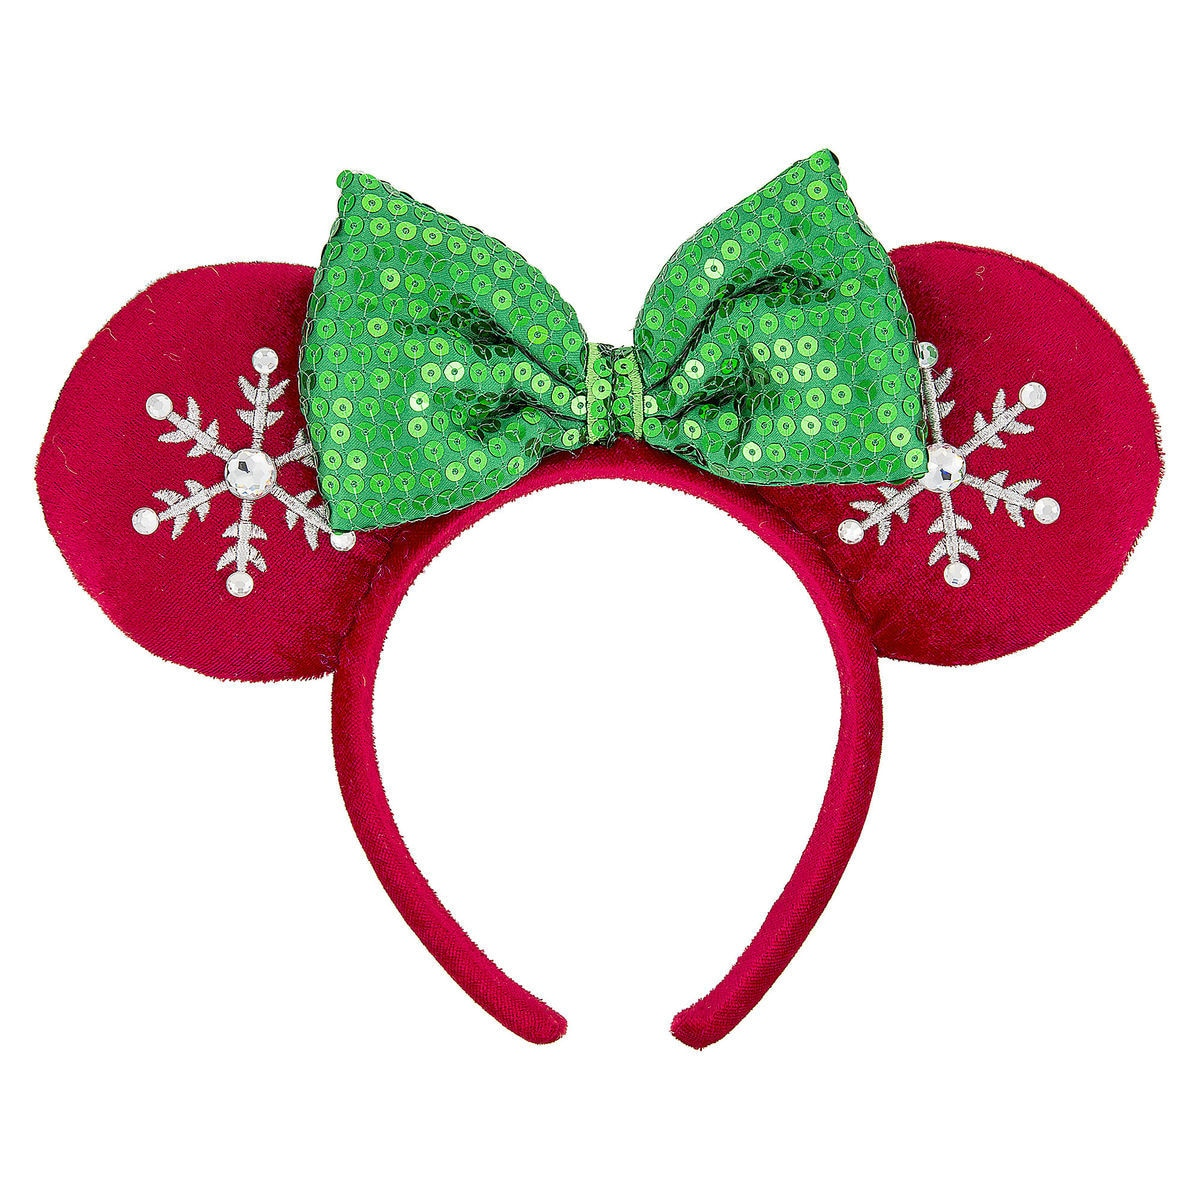 24697479e15 Product Image of Minnie Mouse Snowflake Ears Headband for Adults   1